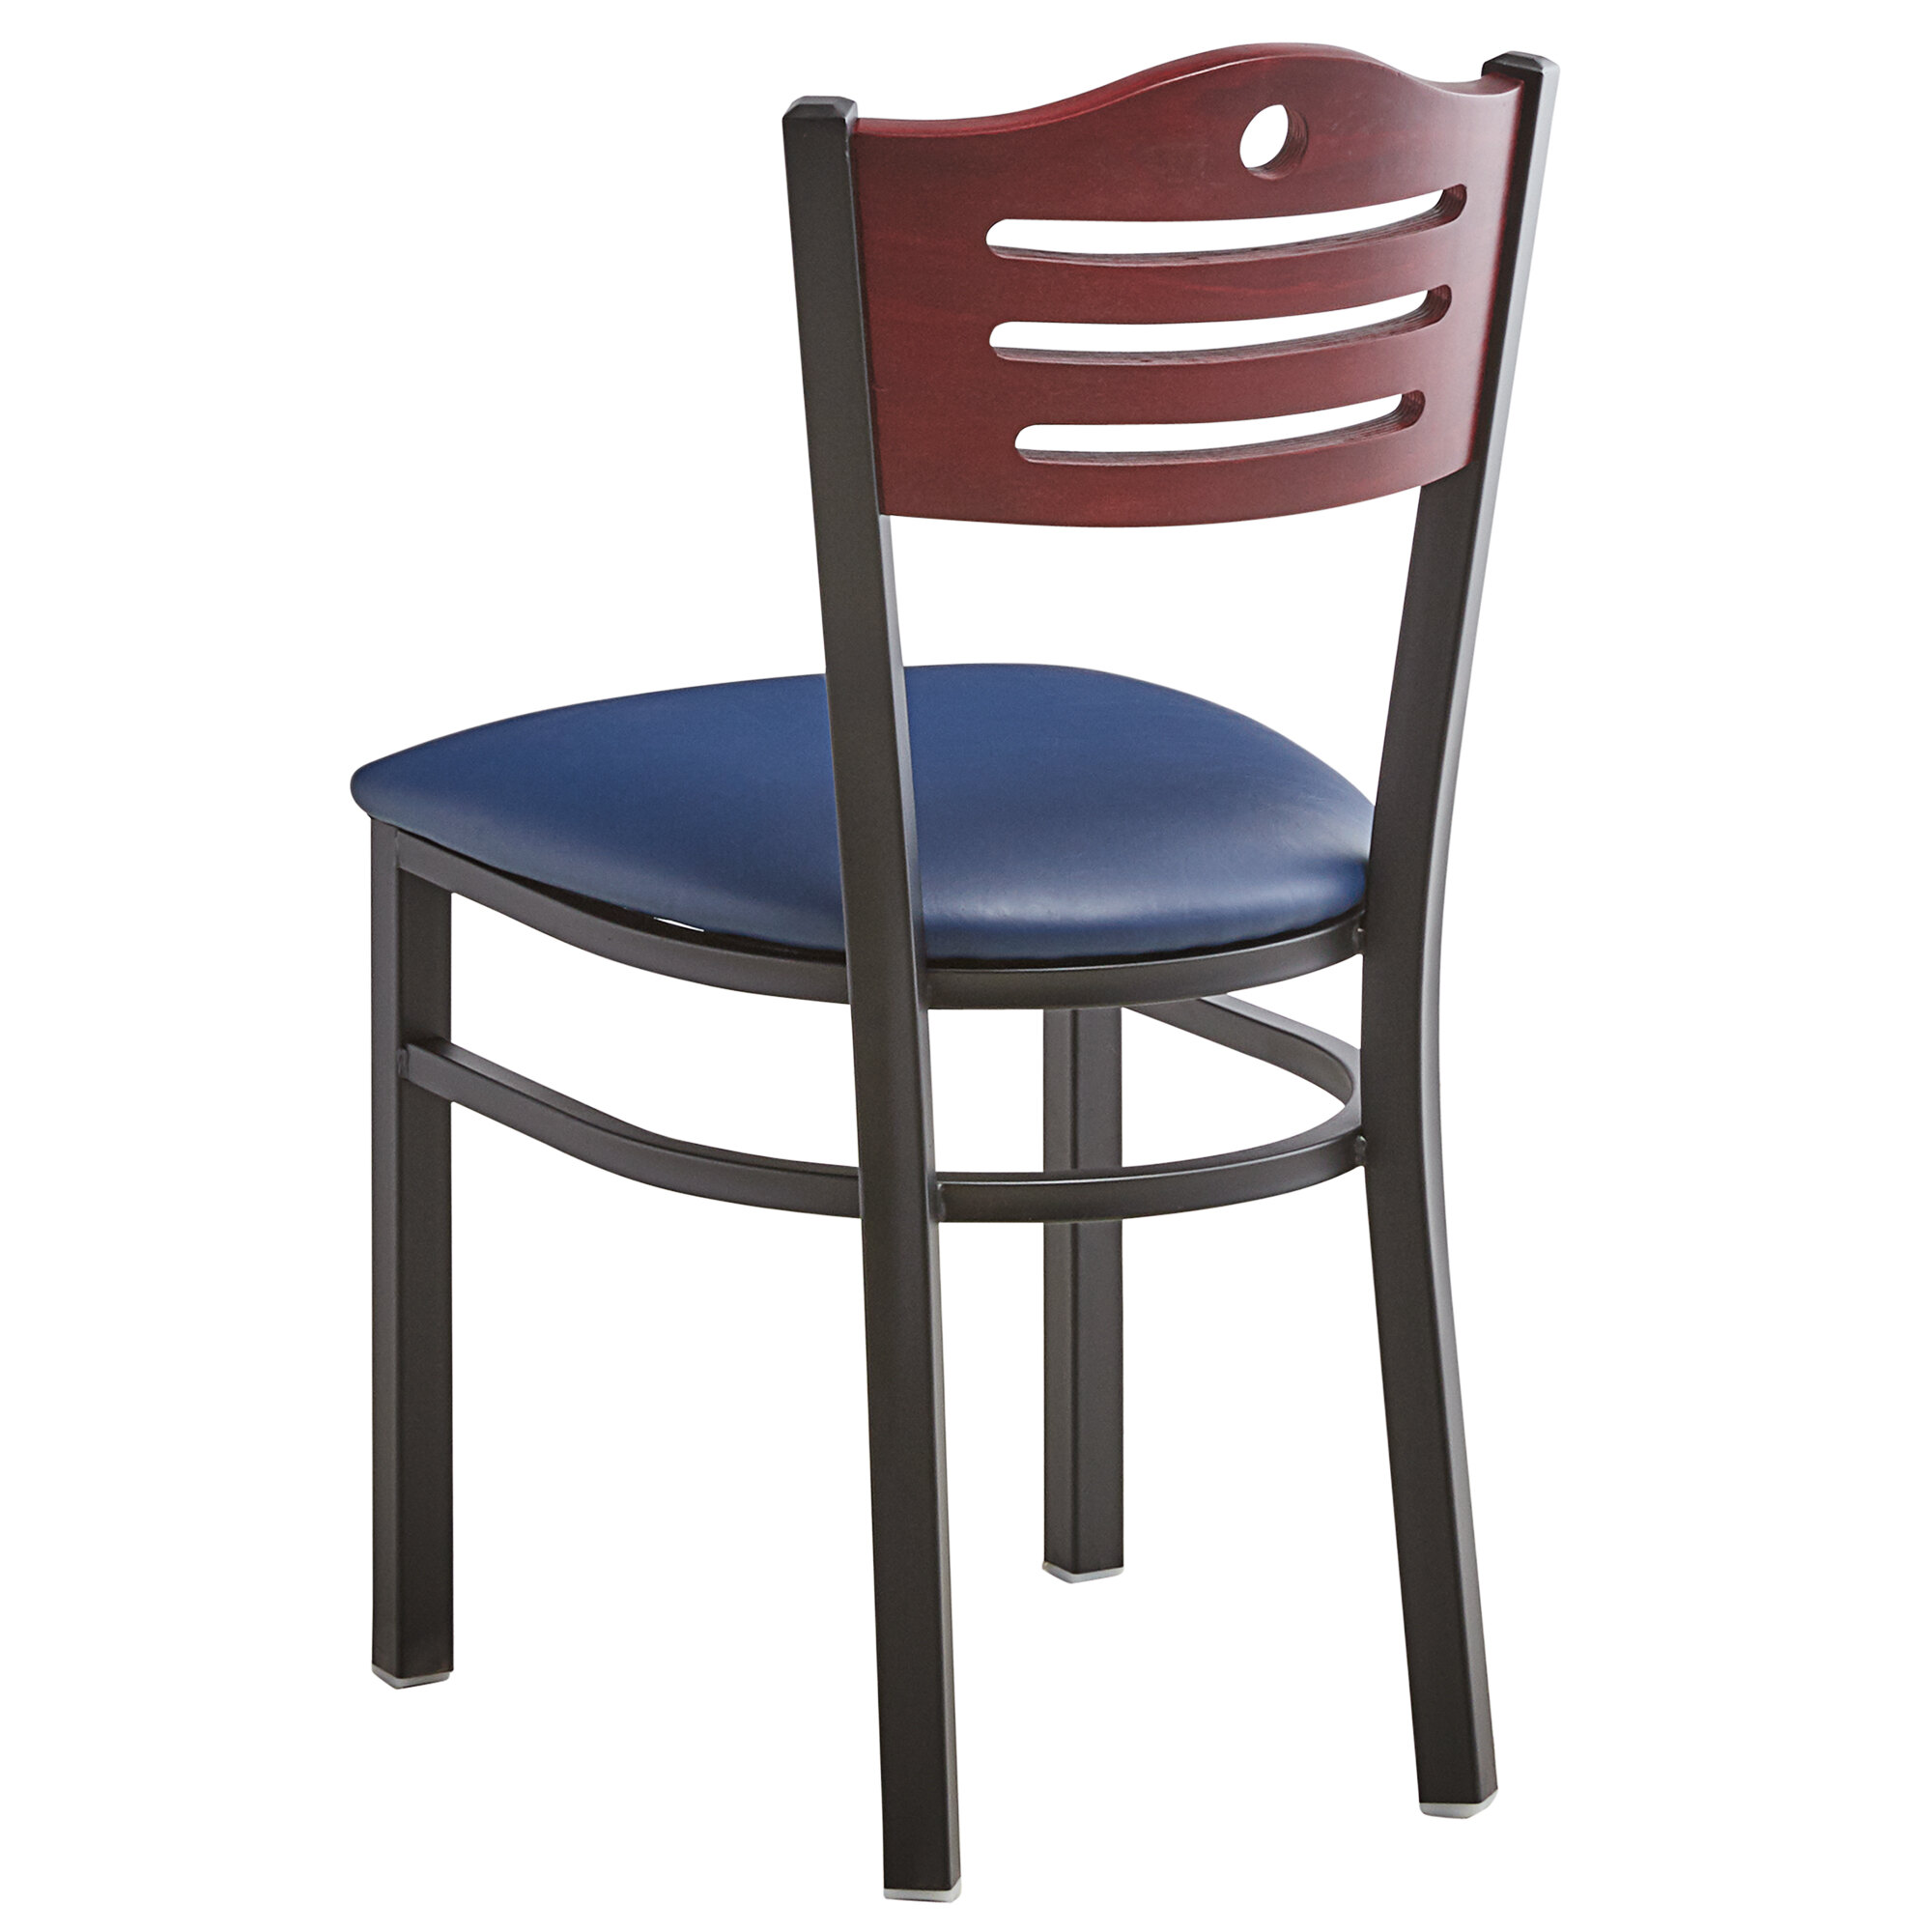 #184 - Slat Back Design Restaurant Metal Chair with Mahogany Wood Back and Navy Vinyl Seat